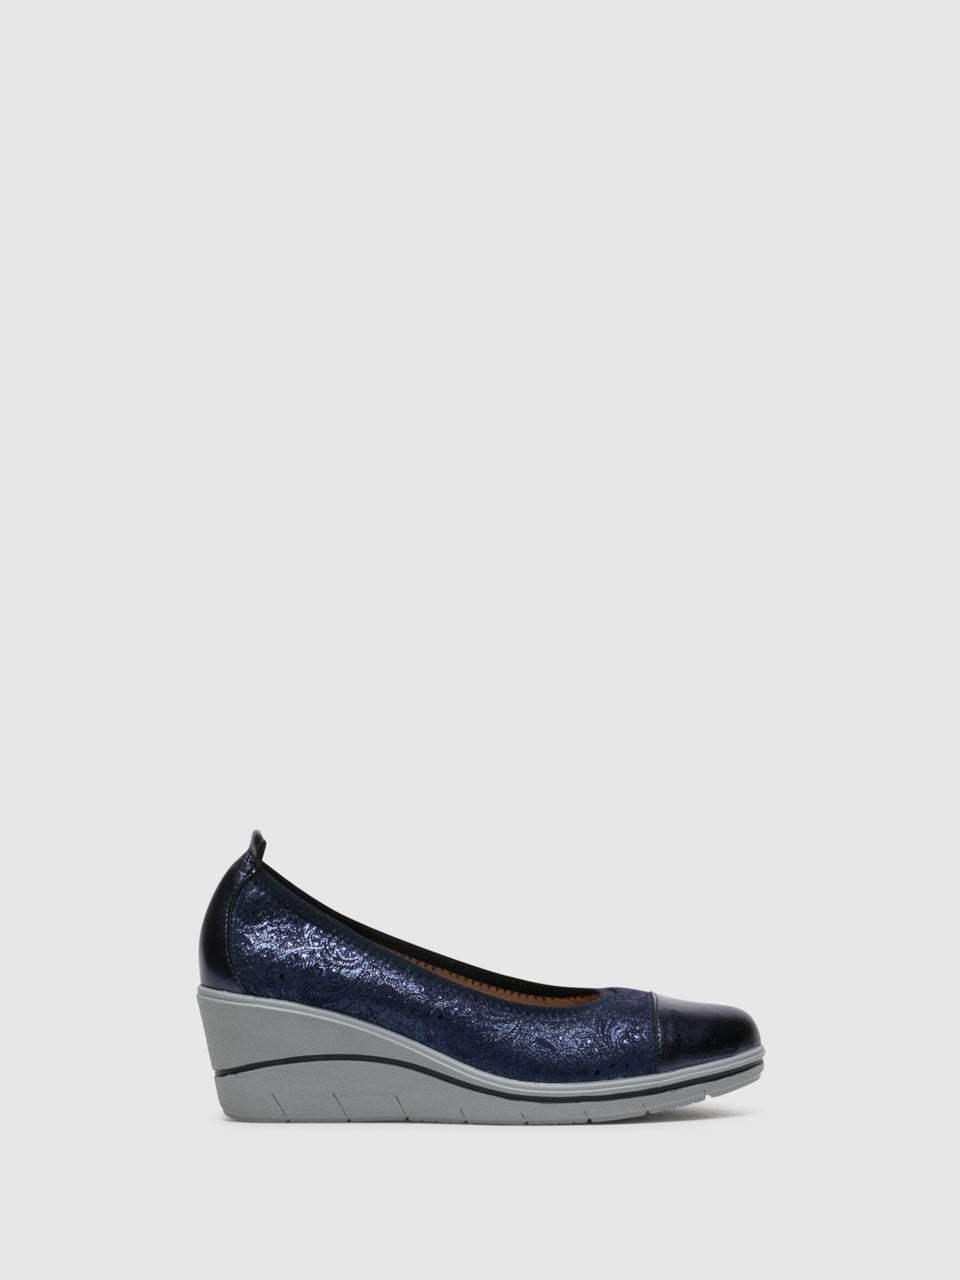 Foreva Blue Wedge Ballerinas